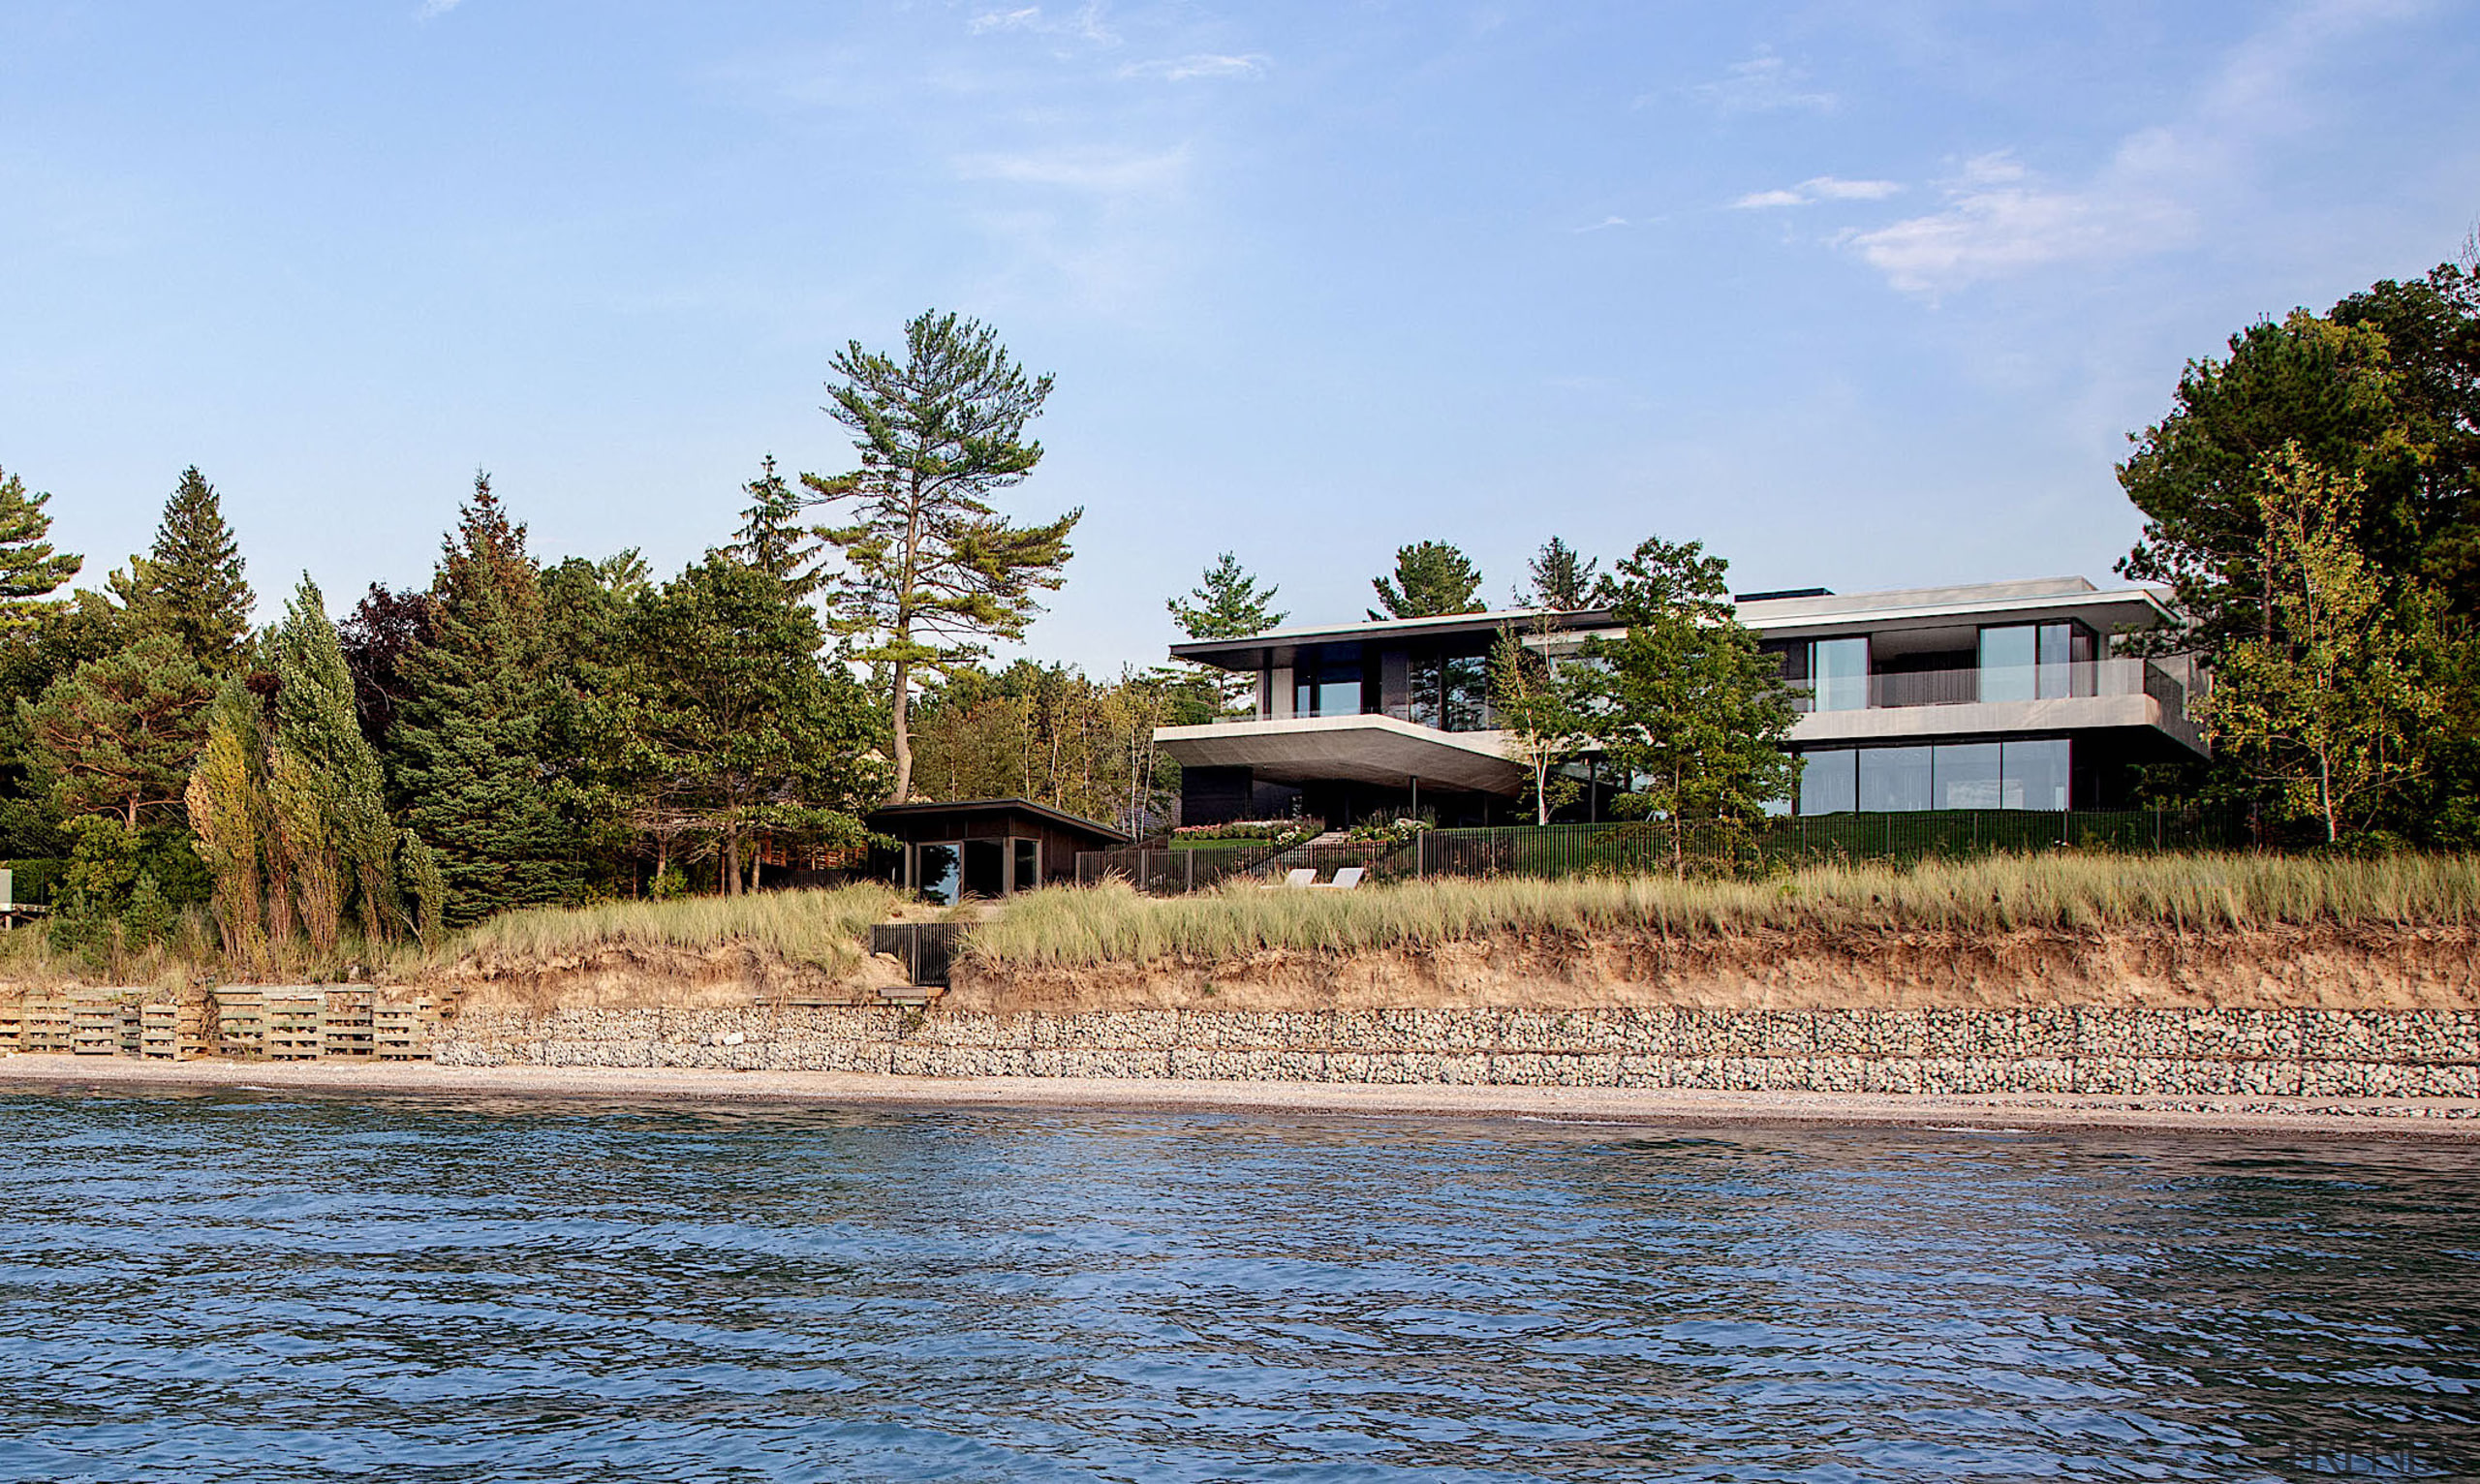 This summer house is set on the banks